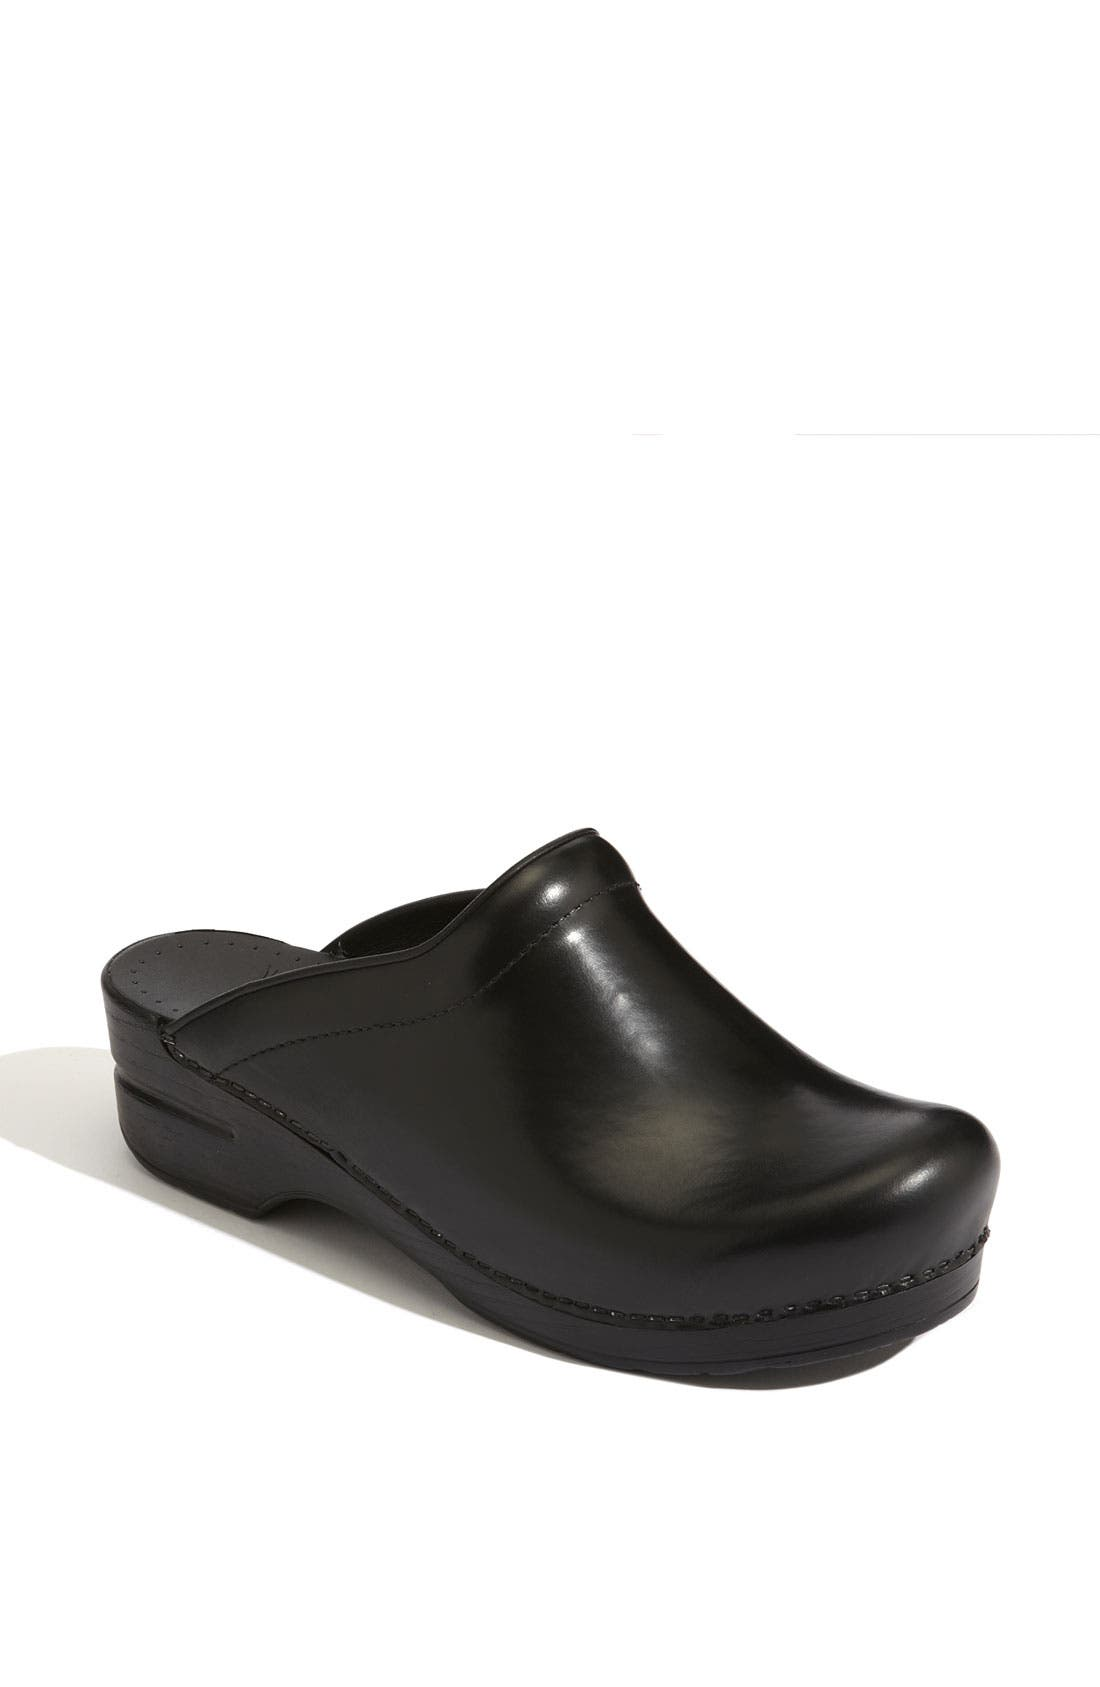 'Sonja' Leather Clog,                         Main,                         color, Black Cabrio